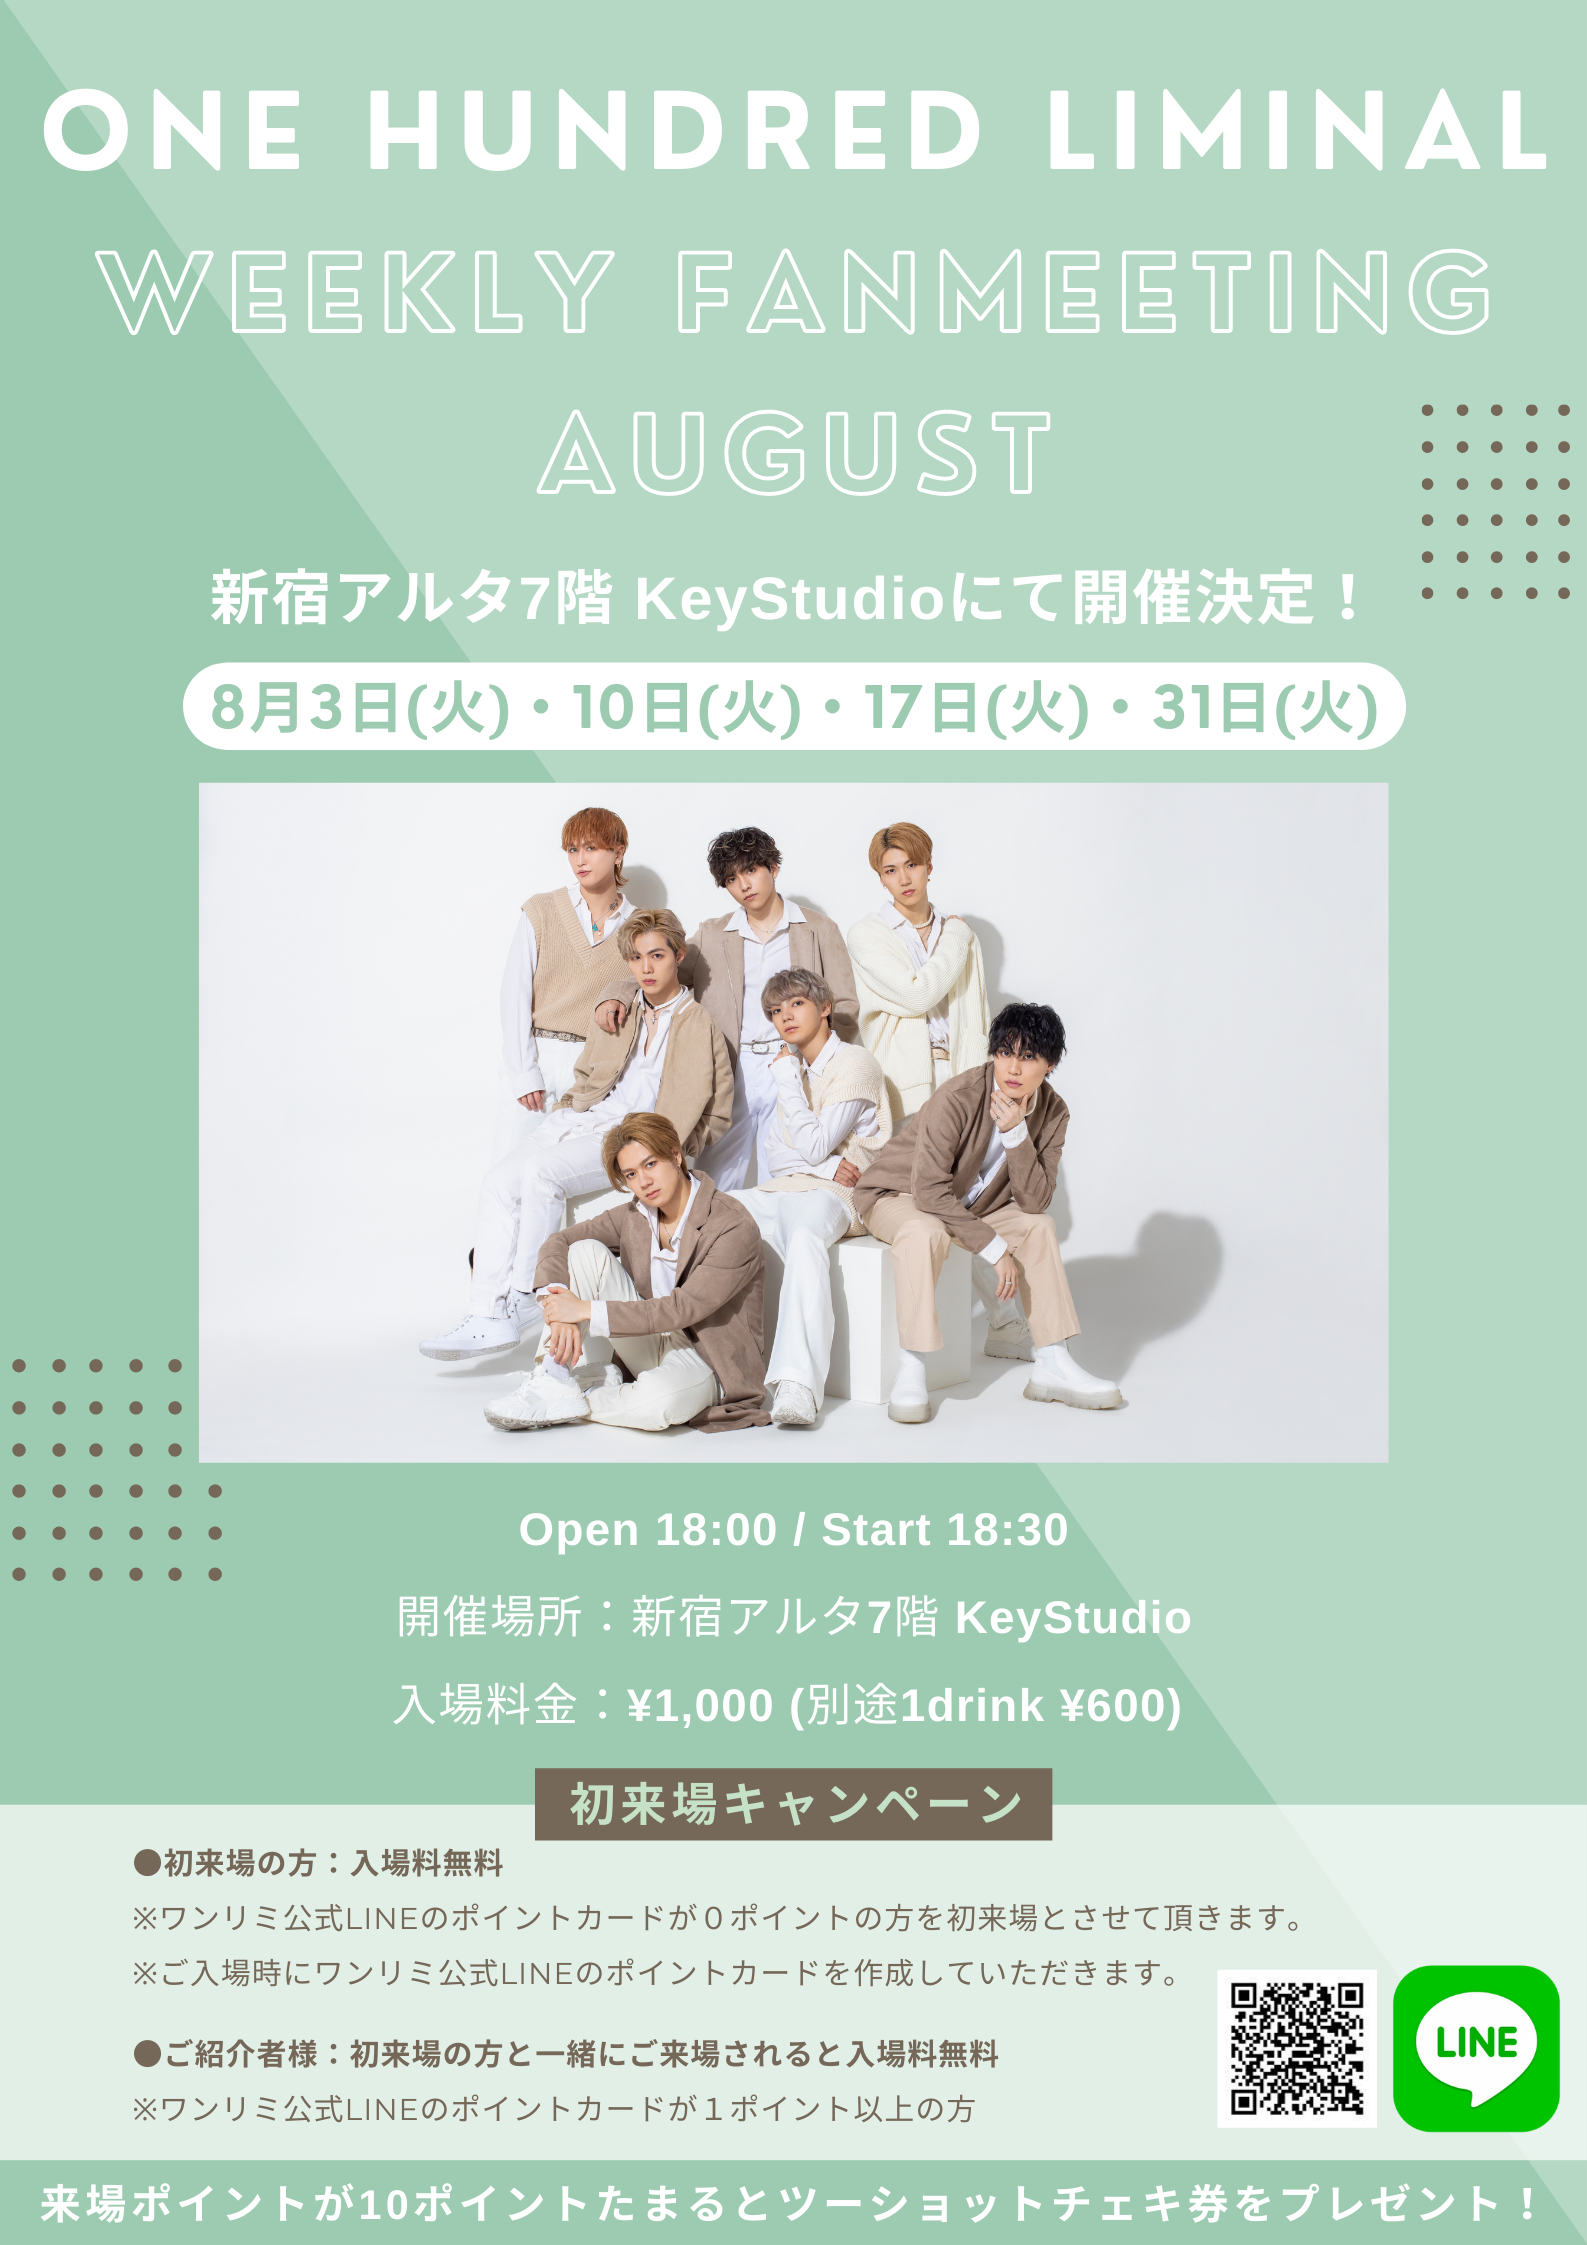 Weekly FanMeeting August 08.03